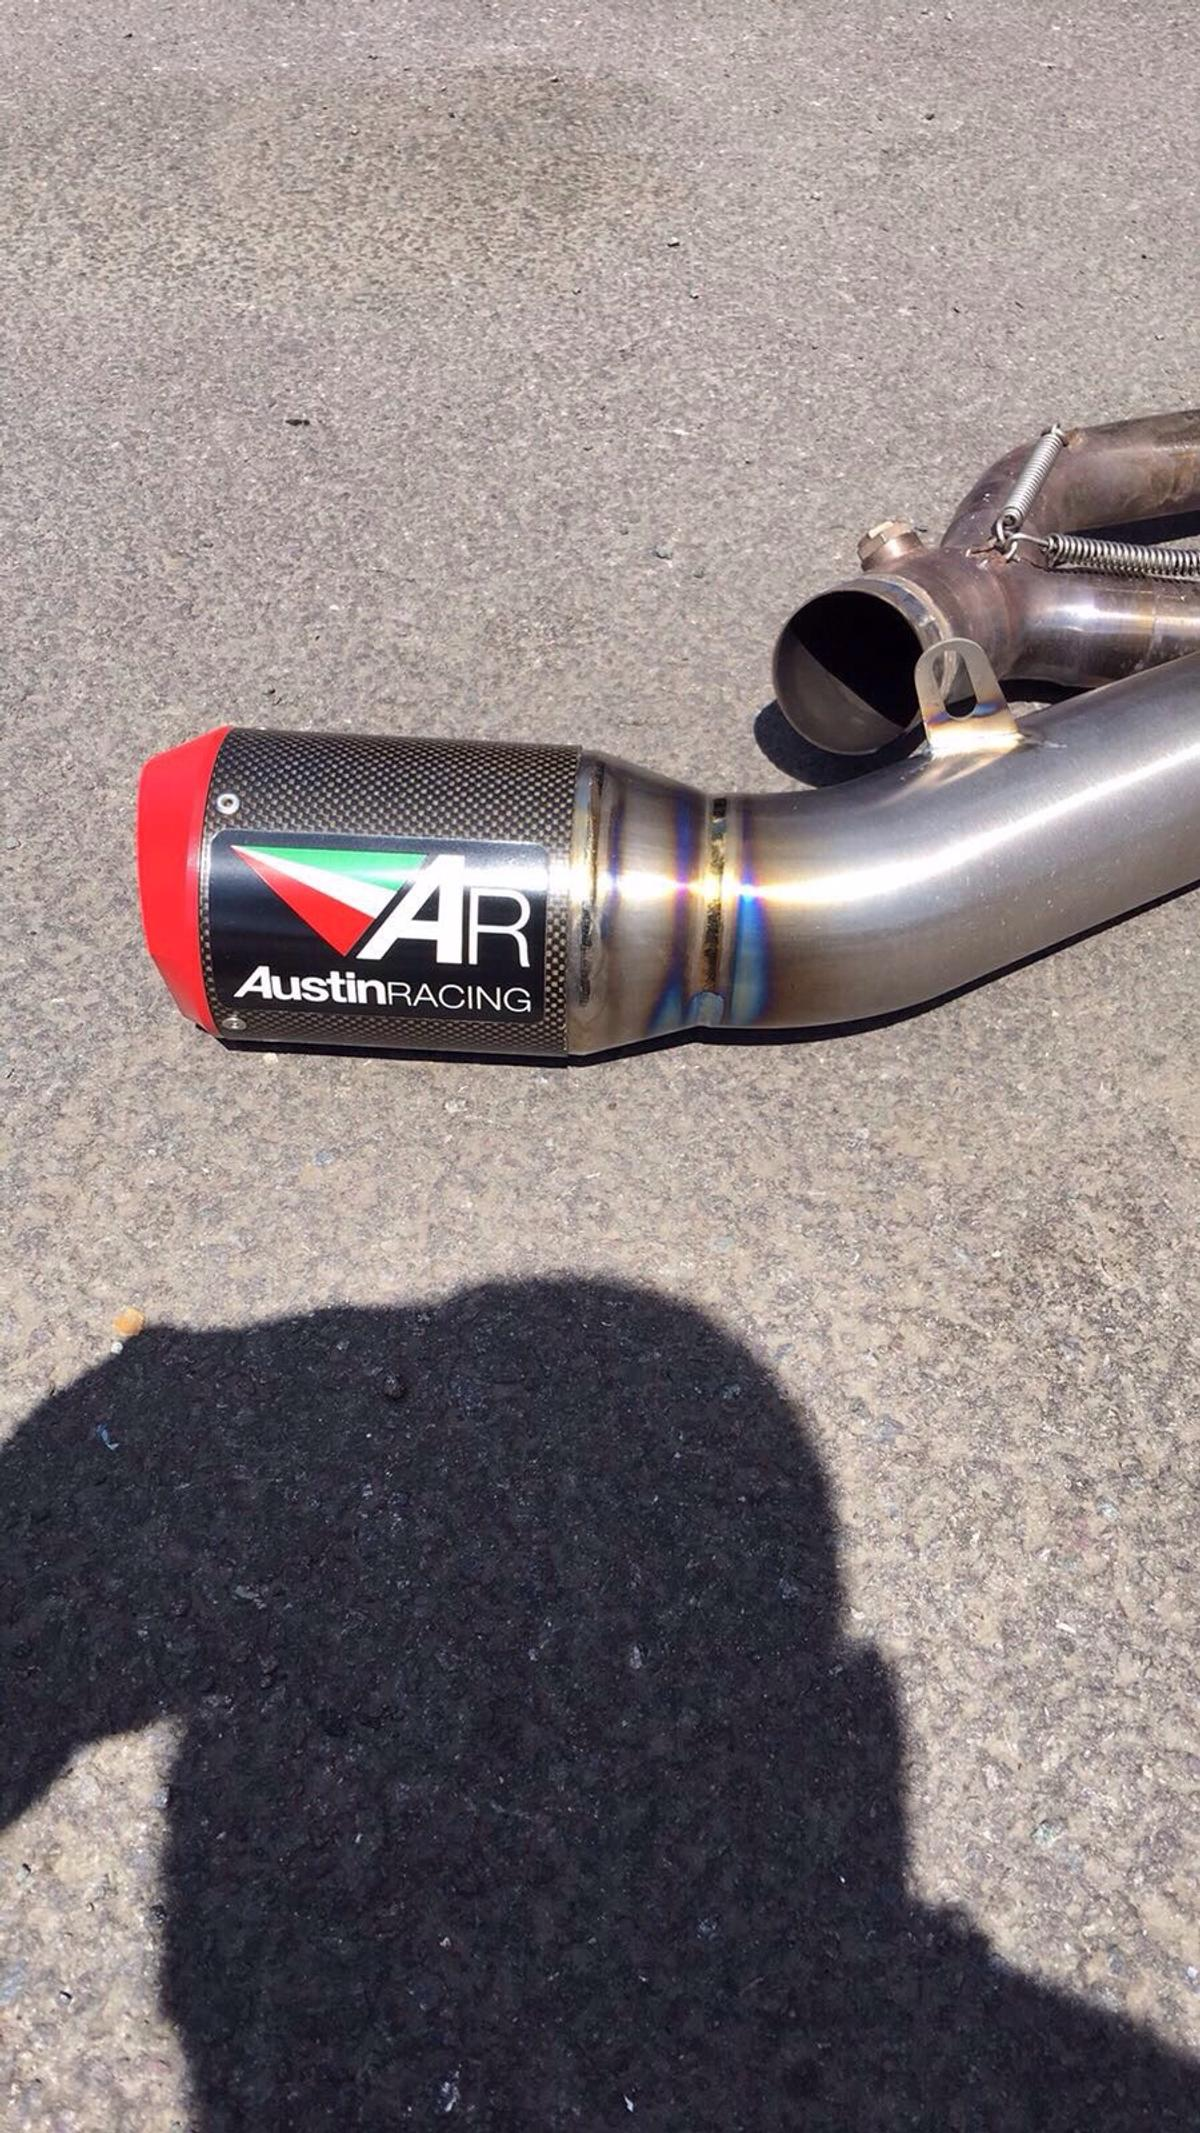 Austin Racing Exhaust S1000rr In Wv11 Wolverhampton For 800 00 For Sale Shpock